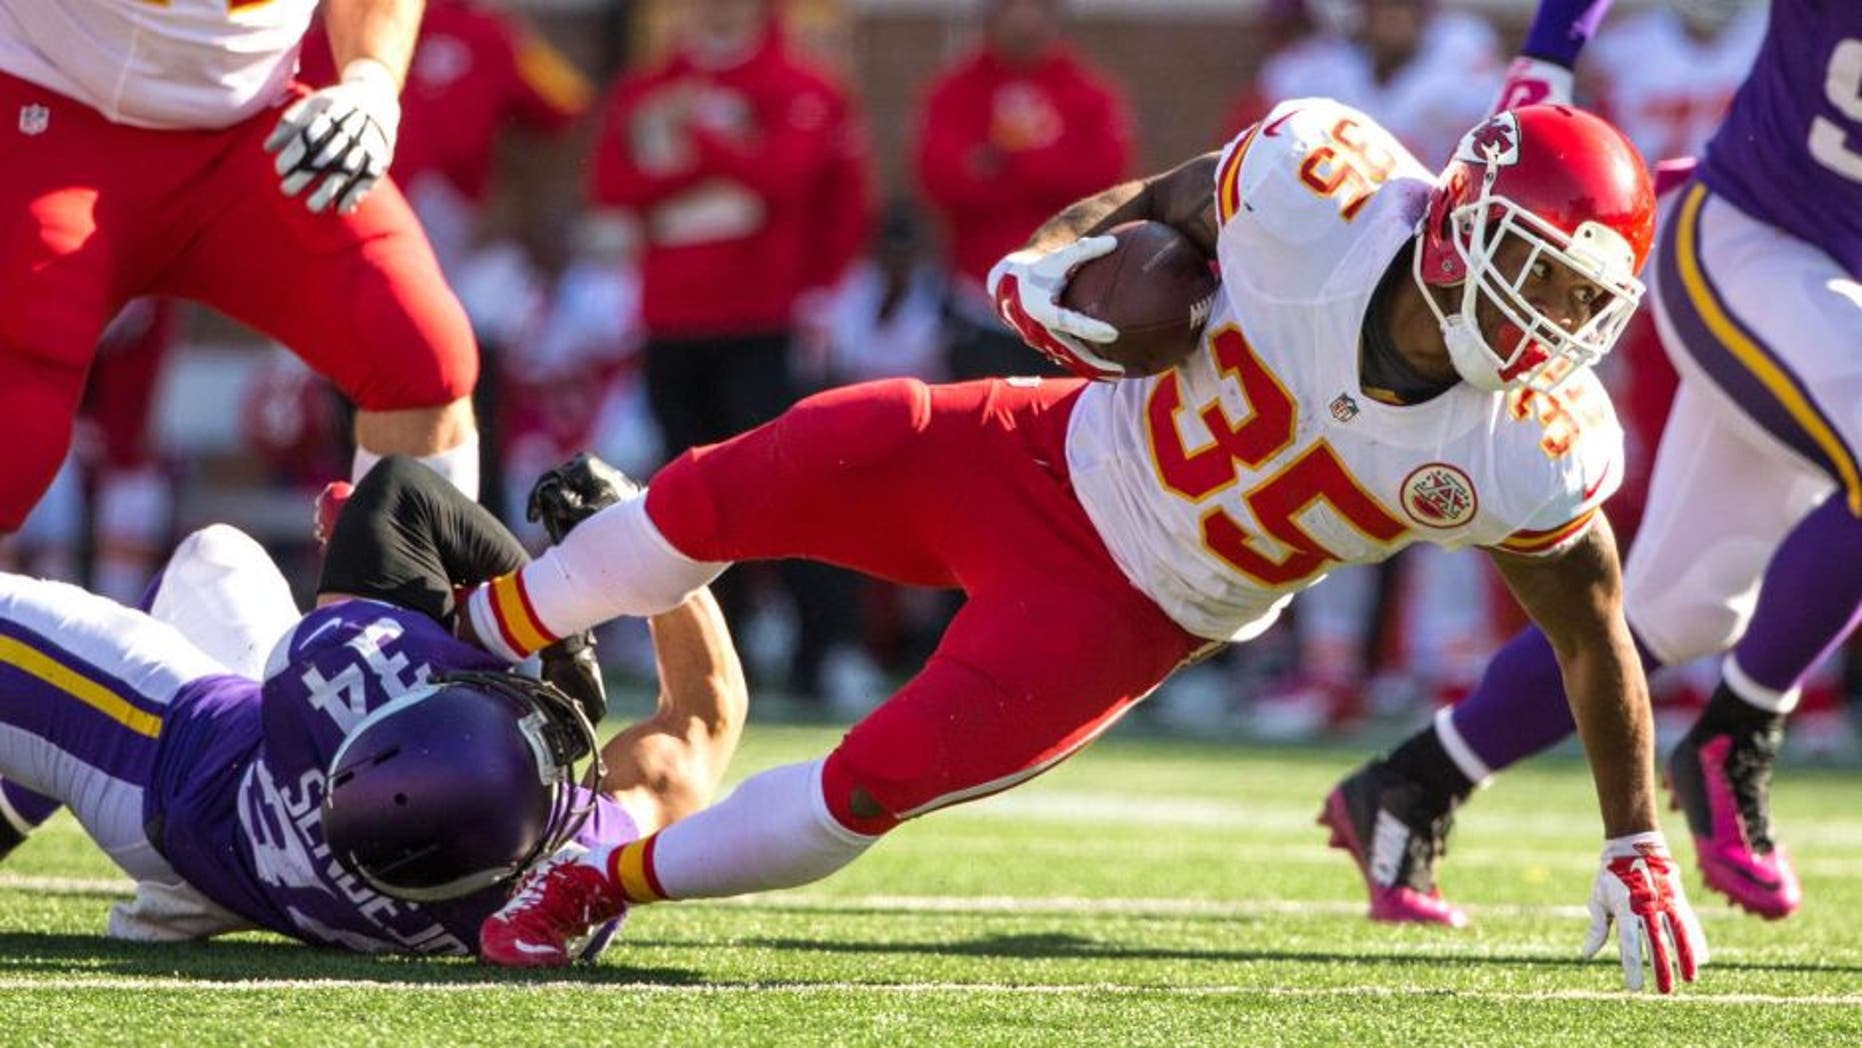 Oct 18, 2015; Minneapolis, MN, USA; Kansas City Chiefs running back Charcandrick West (35) is tackled by Minnesota Vikings safety Andrew Sendejo (34) during the fourth quarter at TCF Bank Stadium. The Vikings defeated the Chiefs 16-10. Mandatory Credit: Brace Hemmelgarn-USA TODAY Sports